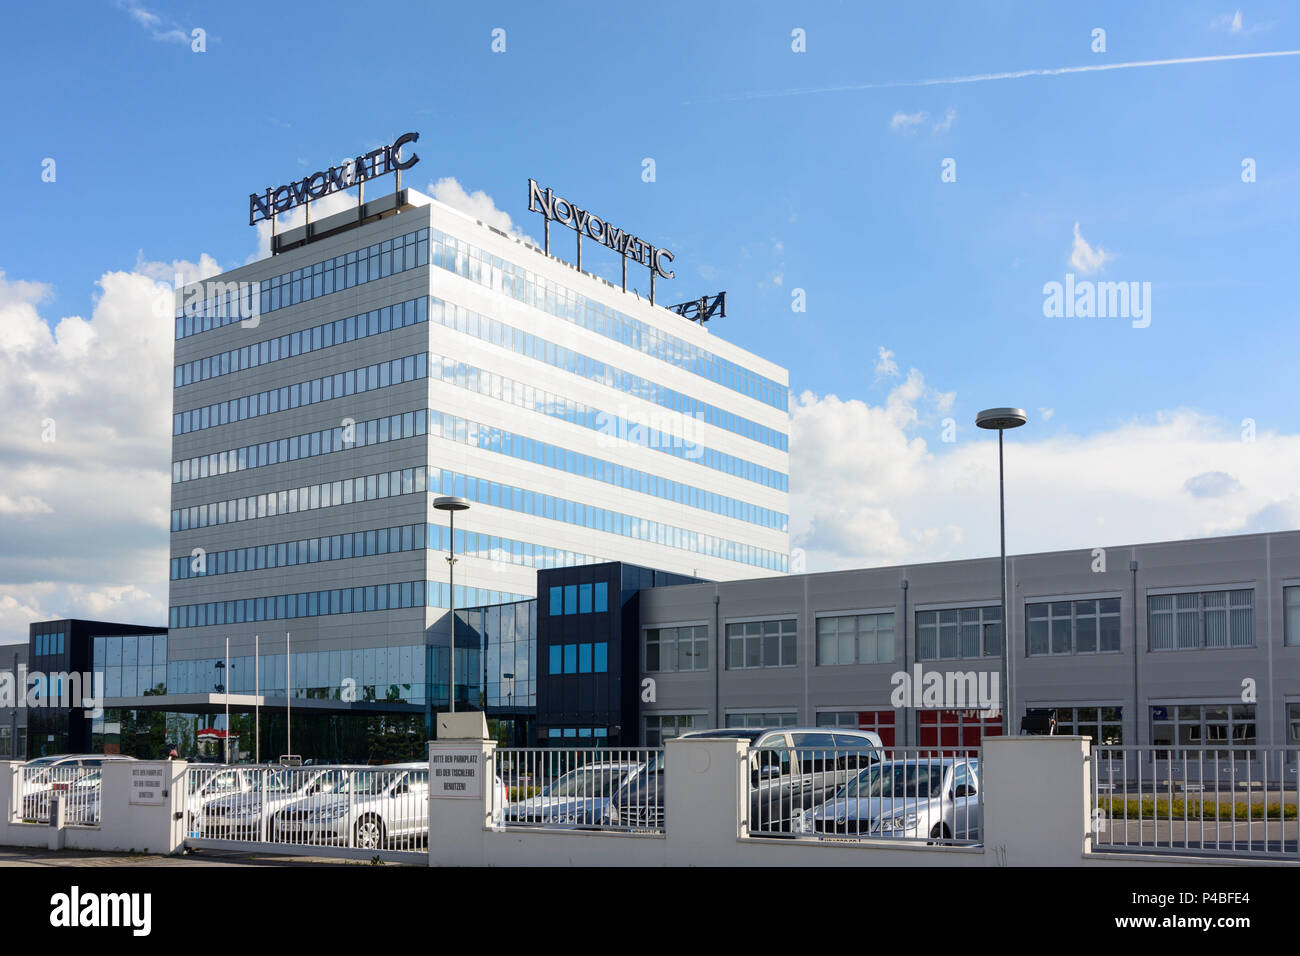 Gumpoldskirchen, Novomatic Austrian Gaming Industries headquarters, Wienerwald, Vienna Woods, Lower Austria, Austria - Stock Image